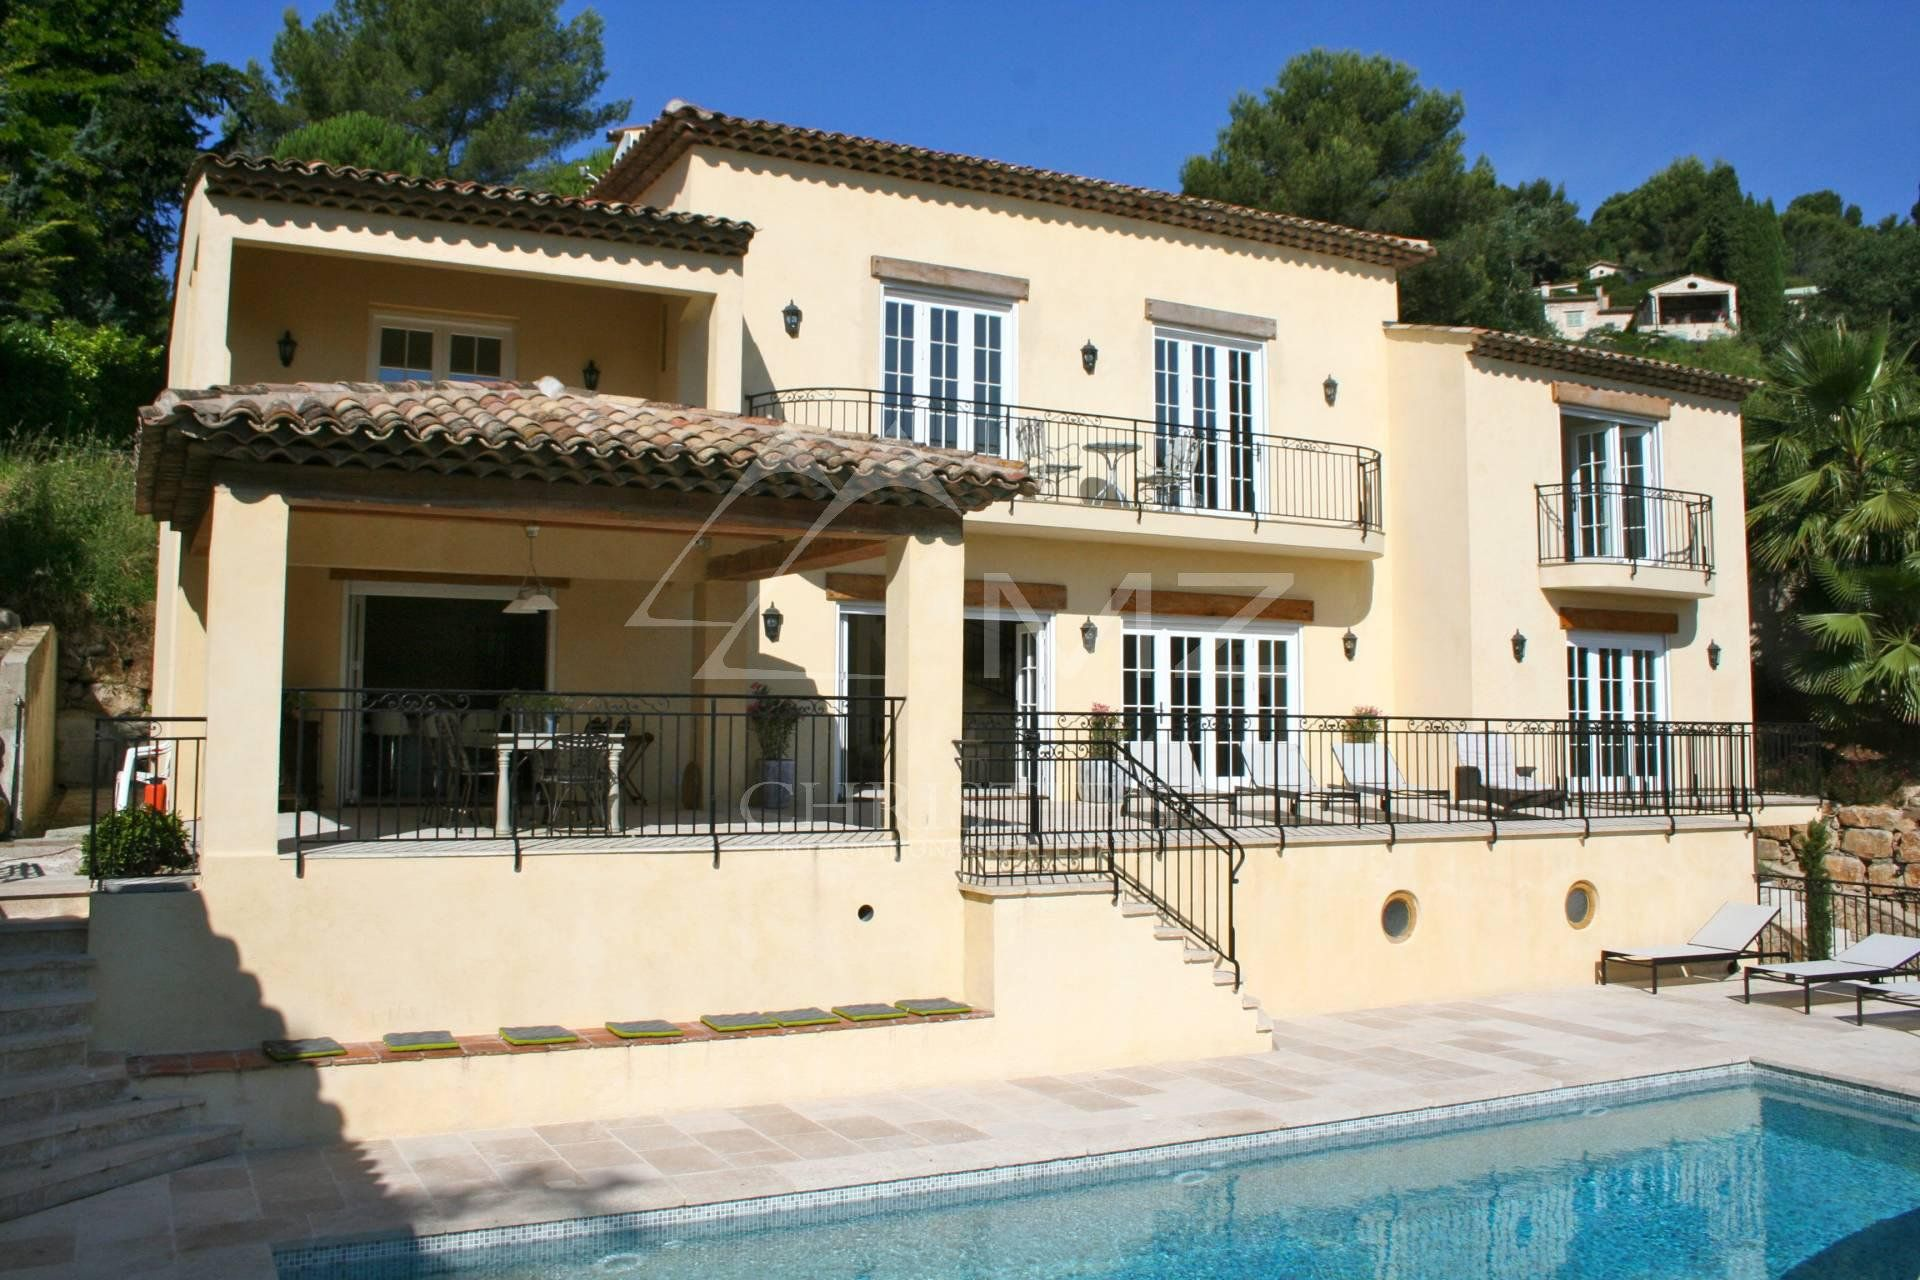 Close to Saint-Paul de Vence - Close to amenities